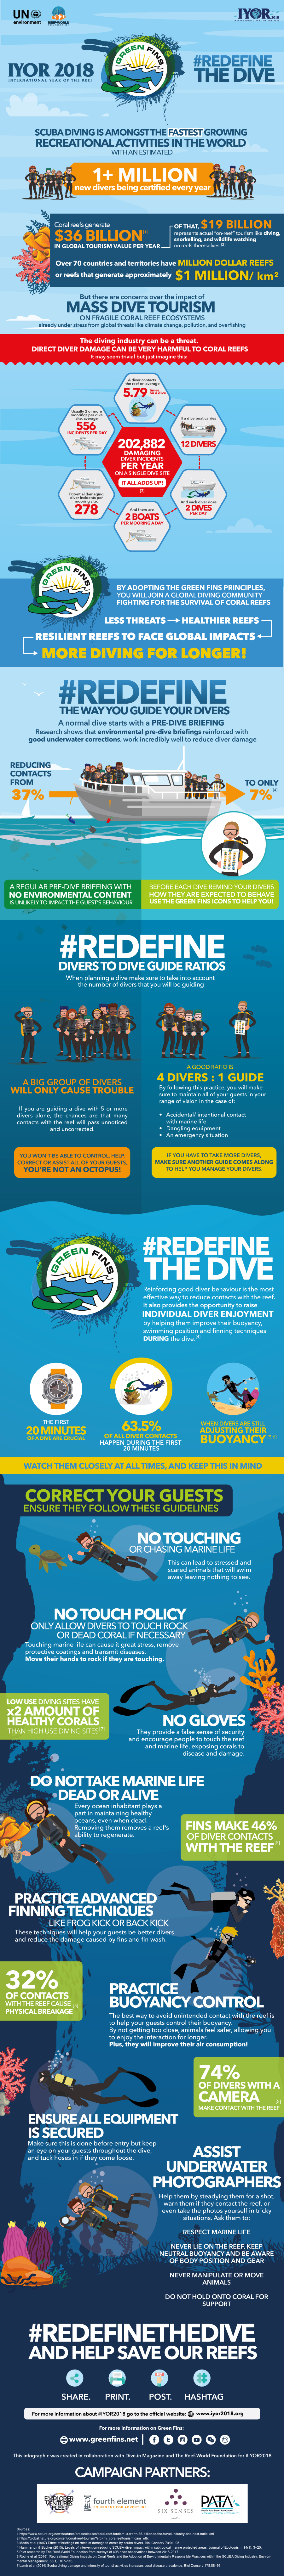 Refine the Dive with Green Fins International Year of the Reef | Explorer Ventures